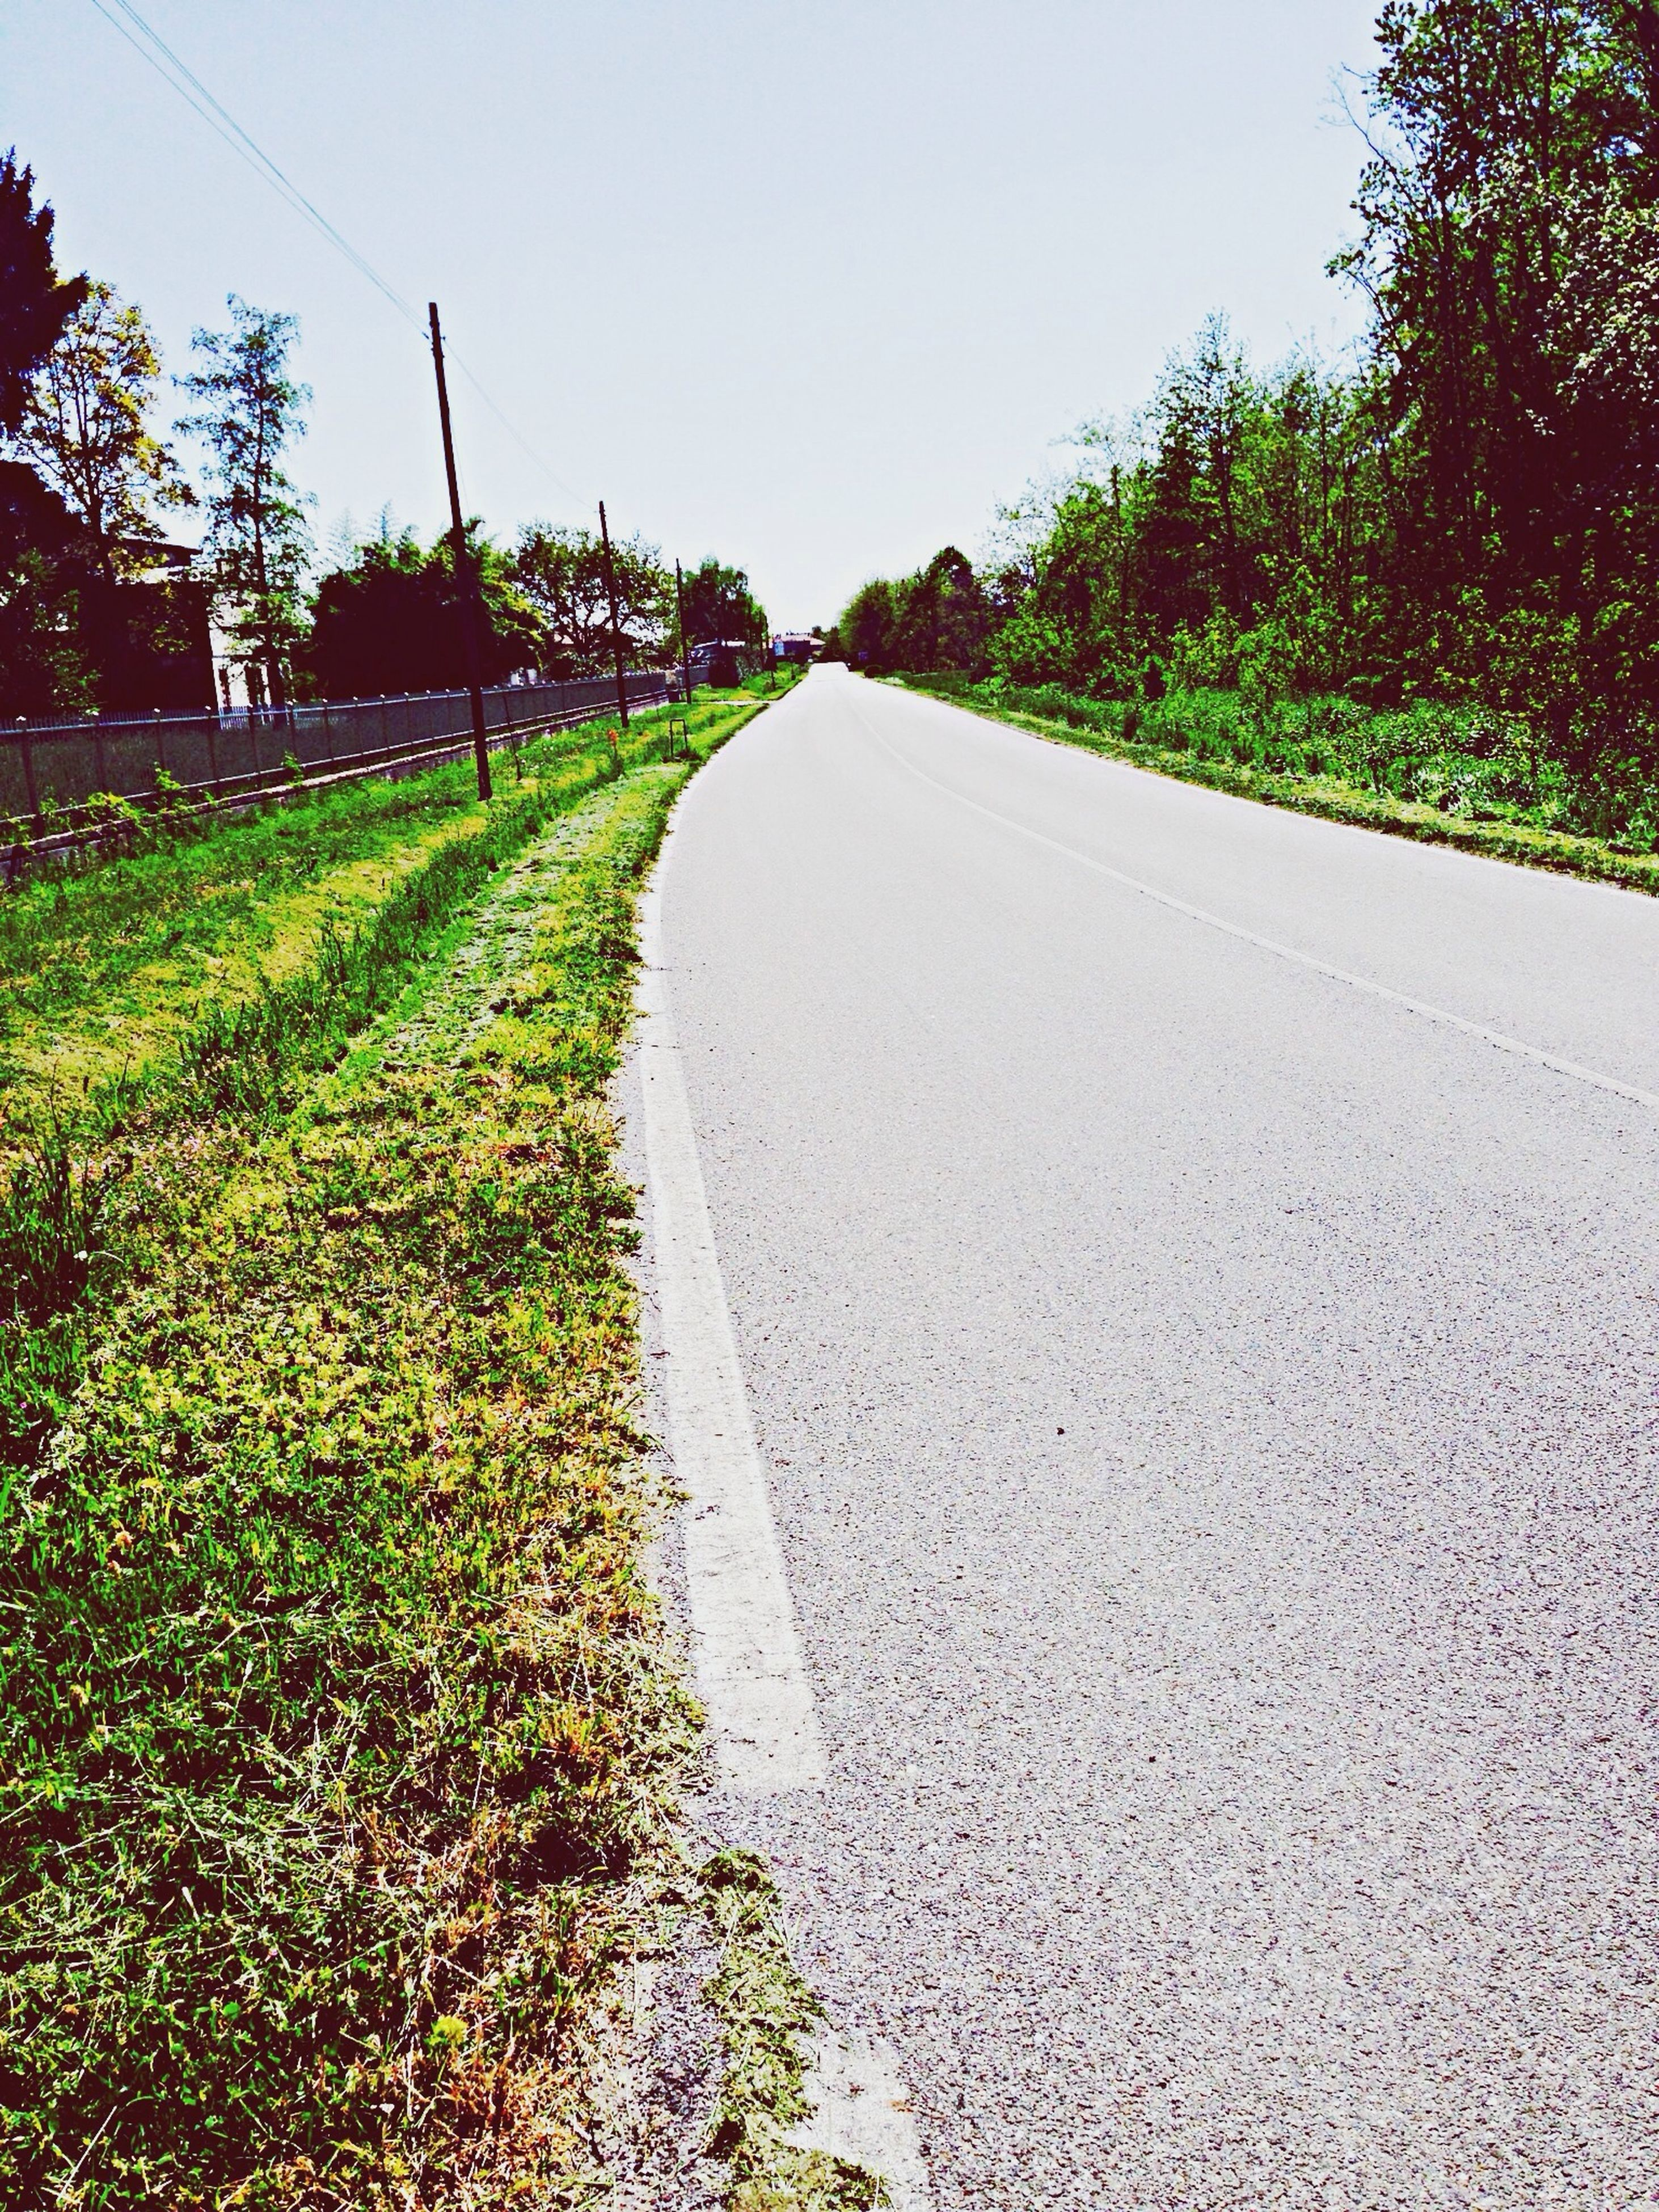 the way forward, tree, clear sky, diminishing perspective, growth, vanishing point, grass, plant, road, tranquility, nature, tranquil scene, field, sky, transportation, landscape, green color, day, empty road, no people